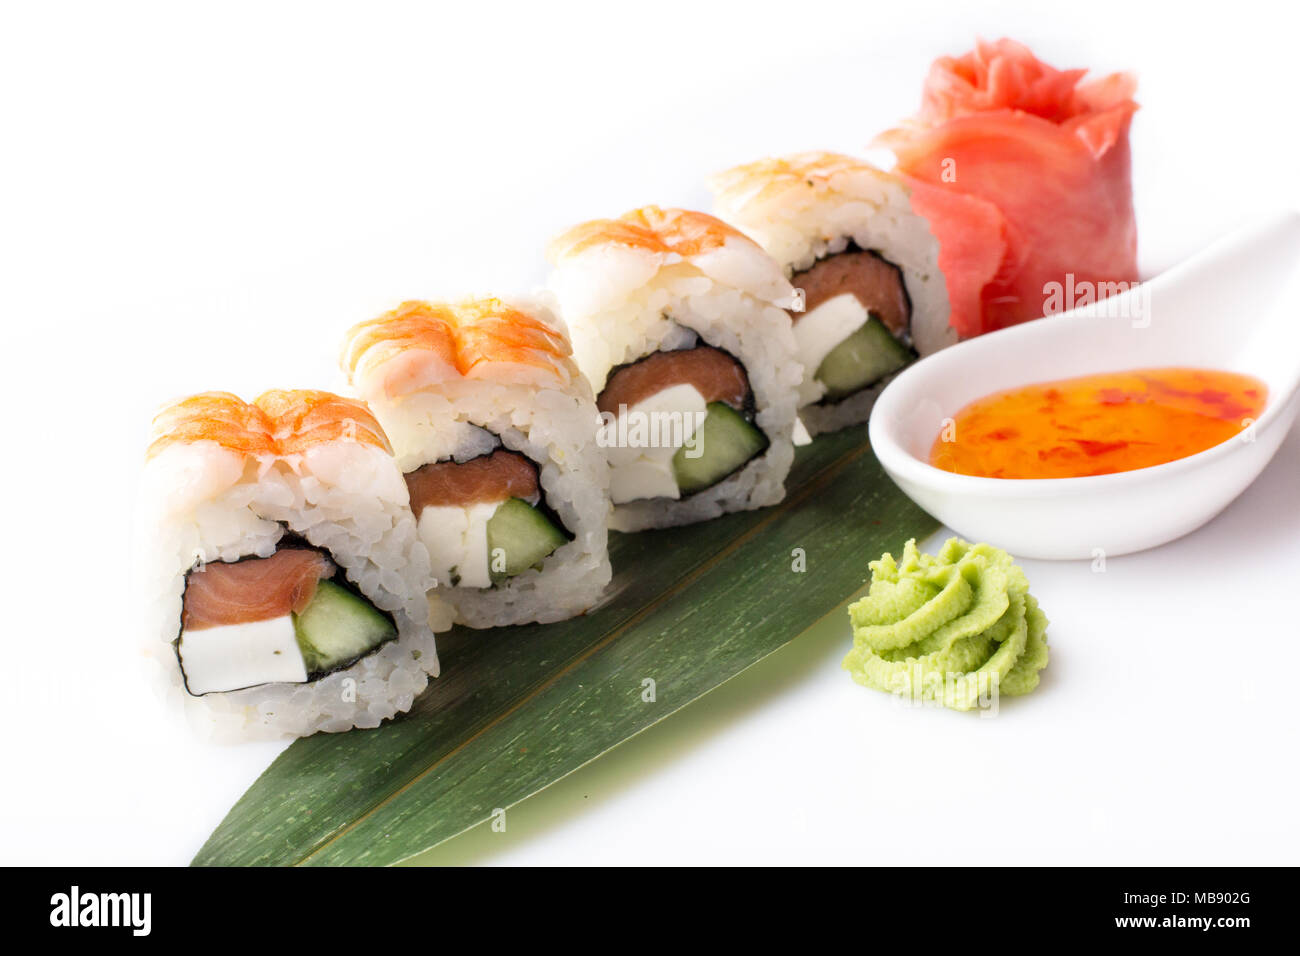 A set of sushi rolls with shrimp and cream cheese laid out on a banana leaf with a spicy sauce. Stock Photo